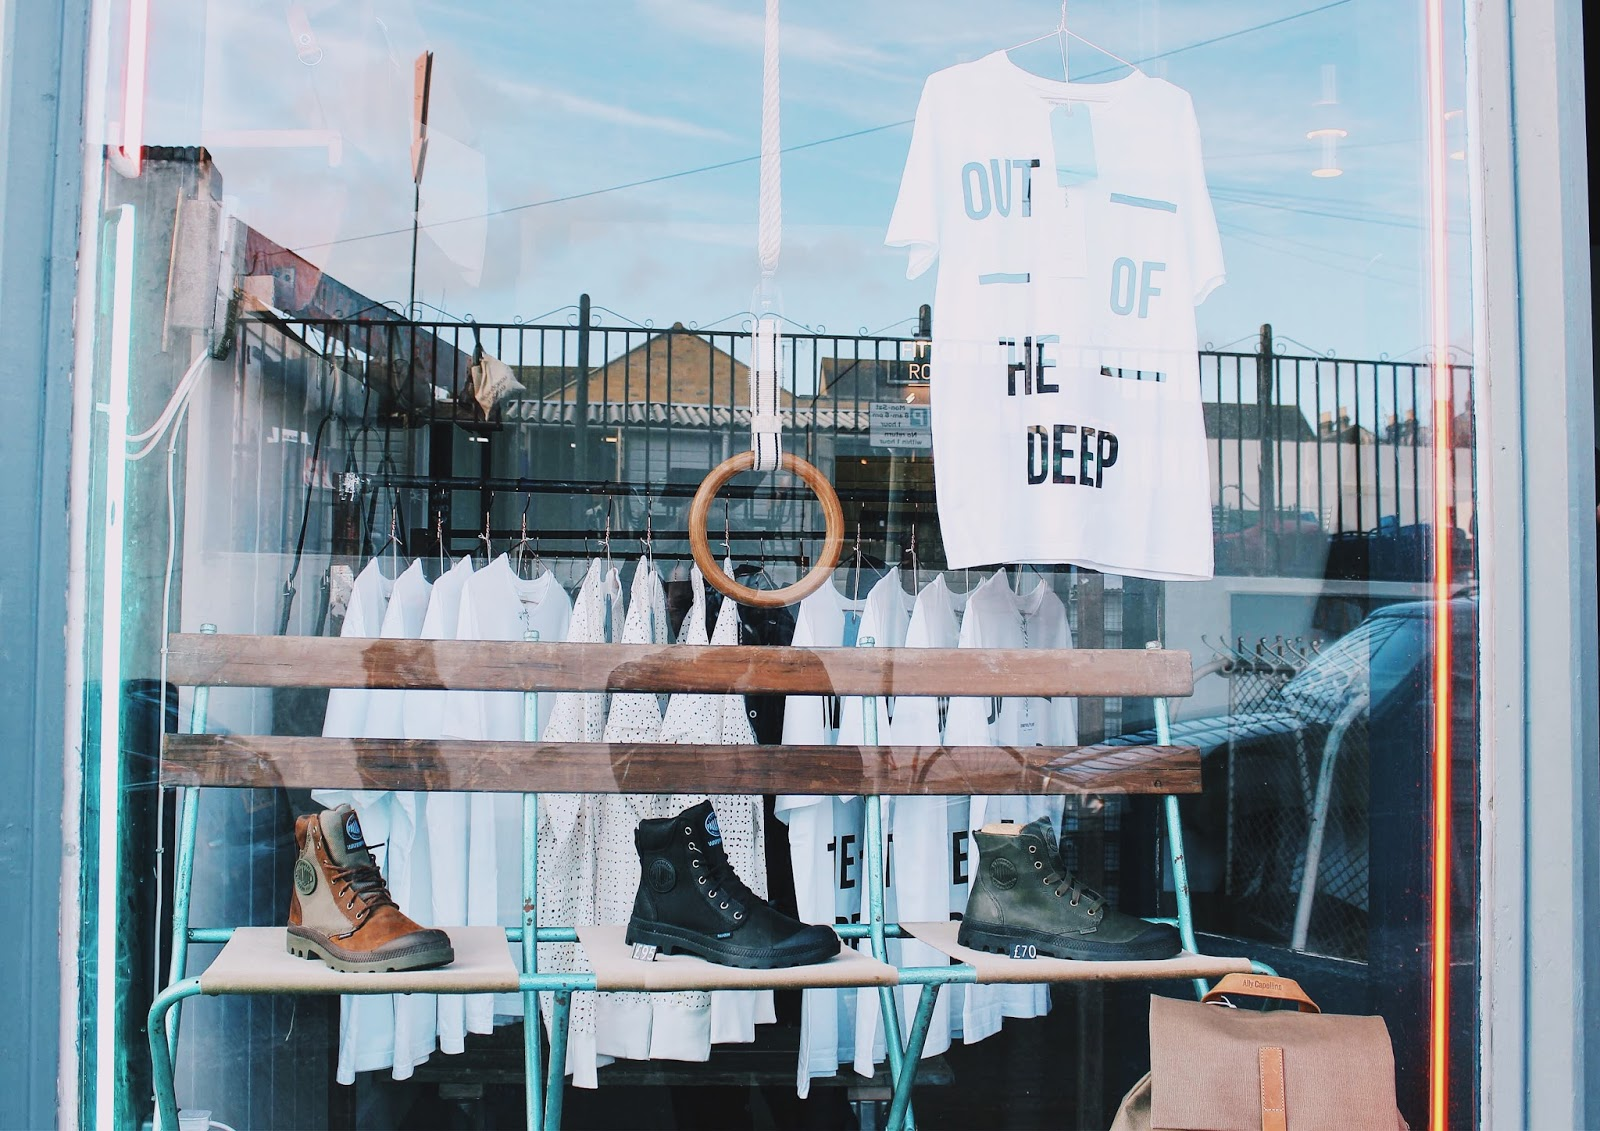 Black Deep menswear and womenswear store in margate featuring crowther plant